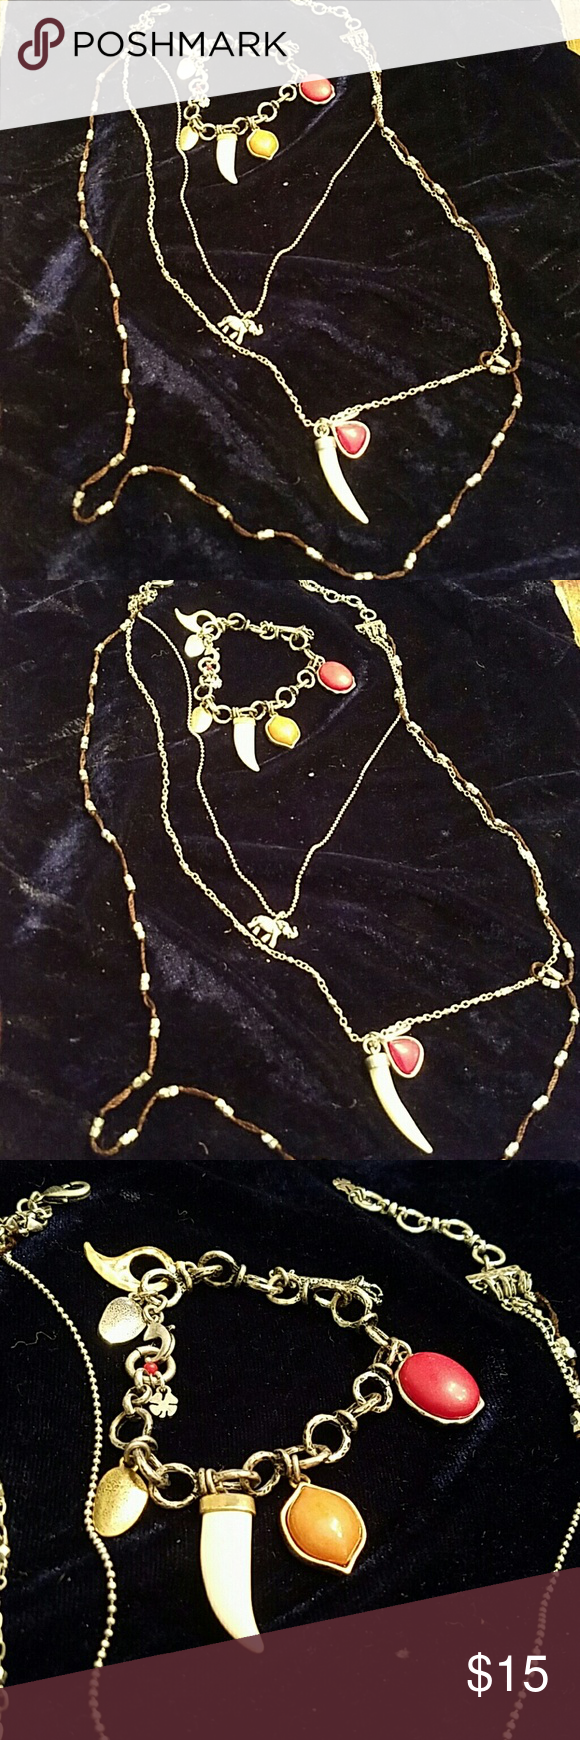 Lucky Brand Neclace and Bracelet set LUCKY BRAND NECKLACE ABD BRACELET SET.  SEE PHOTOS. NEXKLACE IS 3 LEVEL APX 20 INCHES. BRACELET APX 8 INCHES Jewelry Necklaces